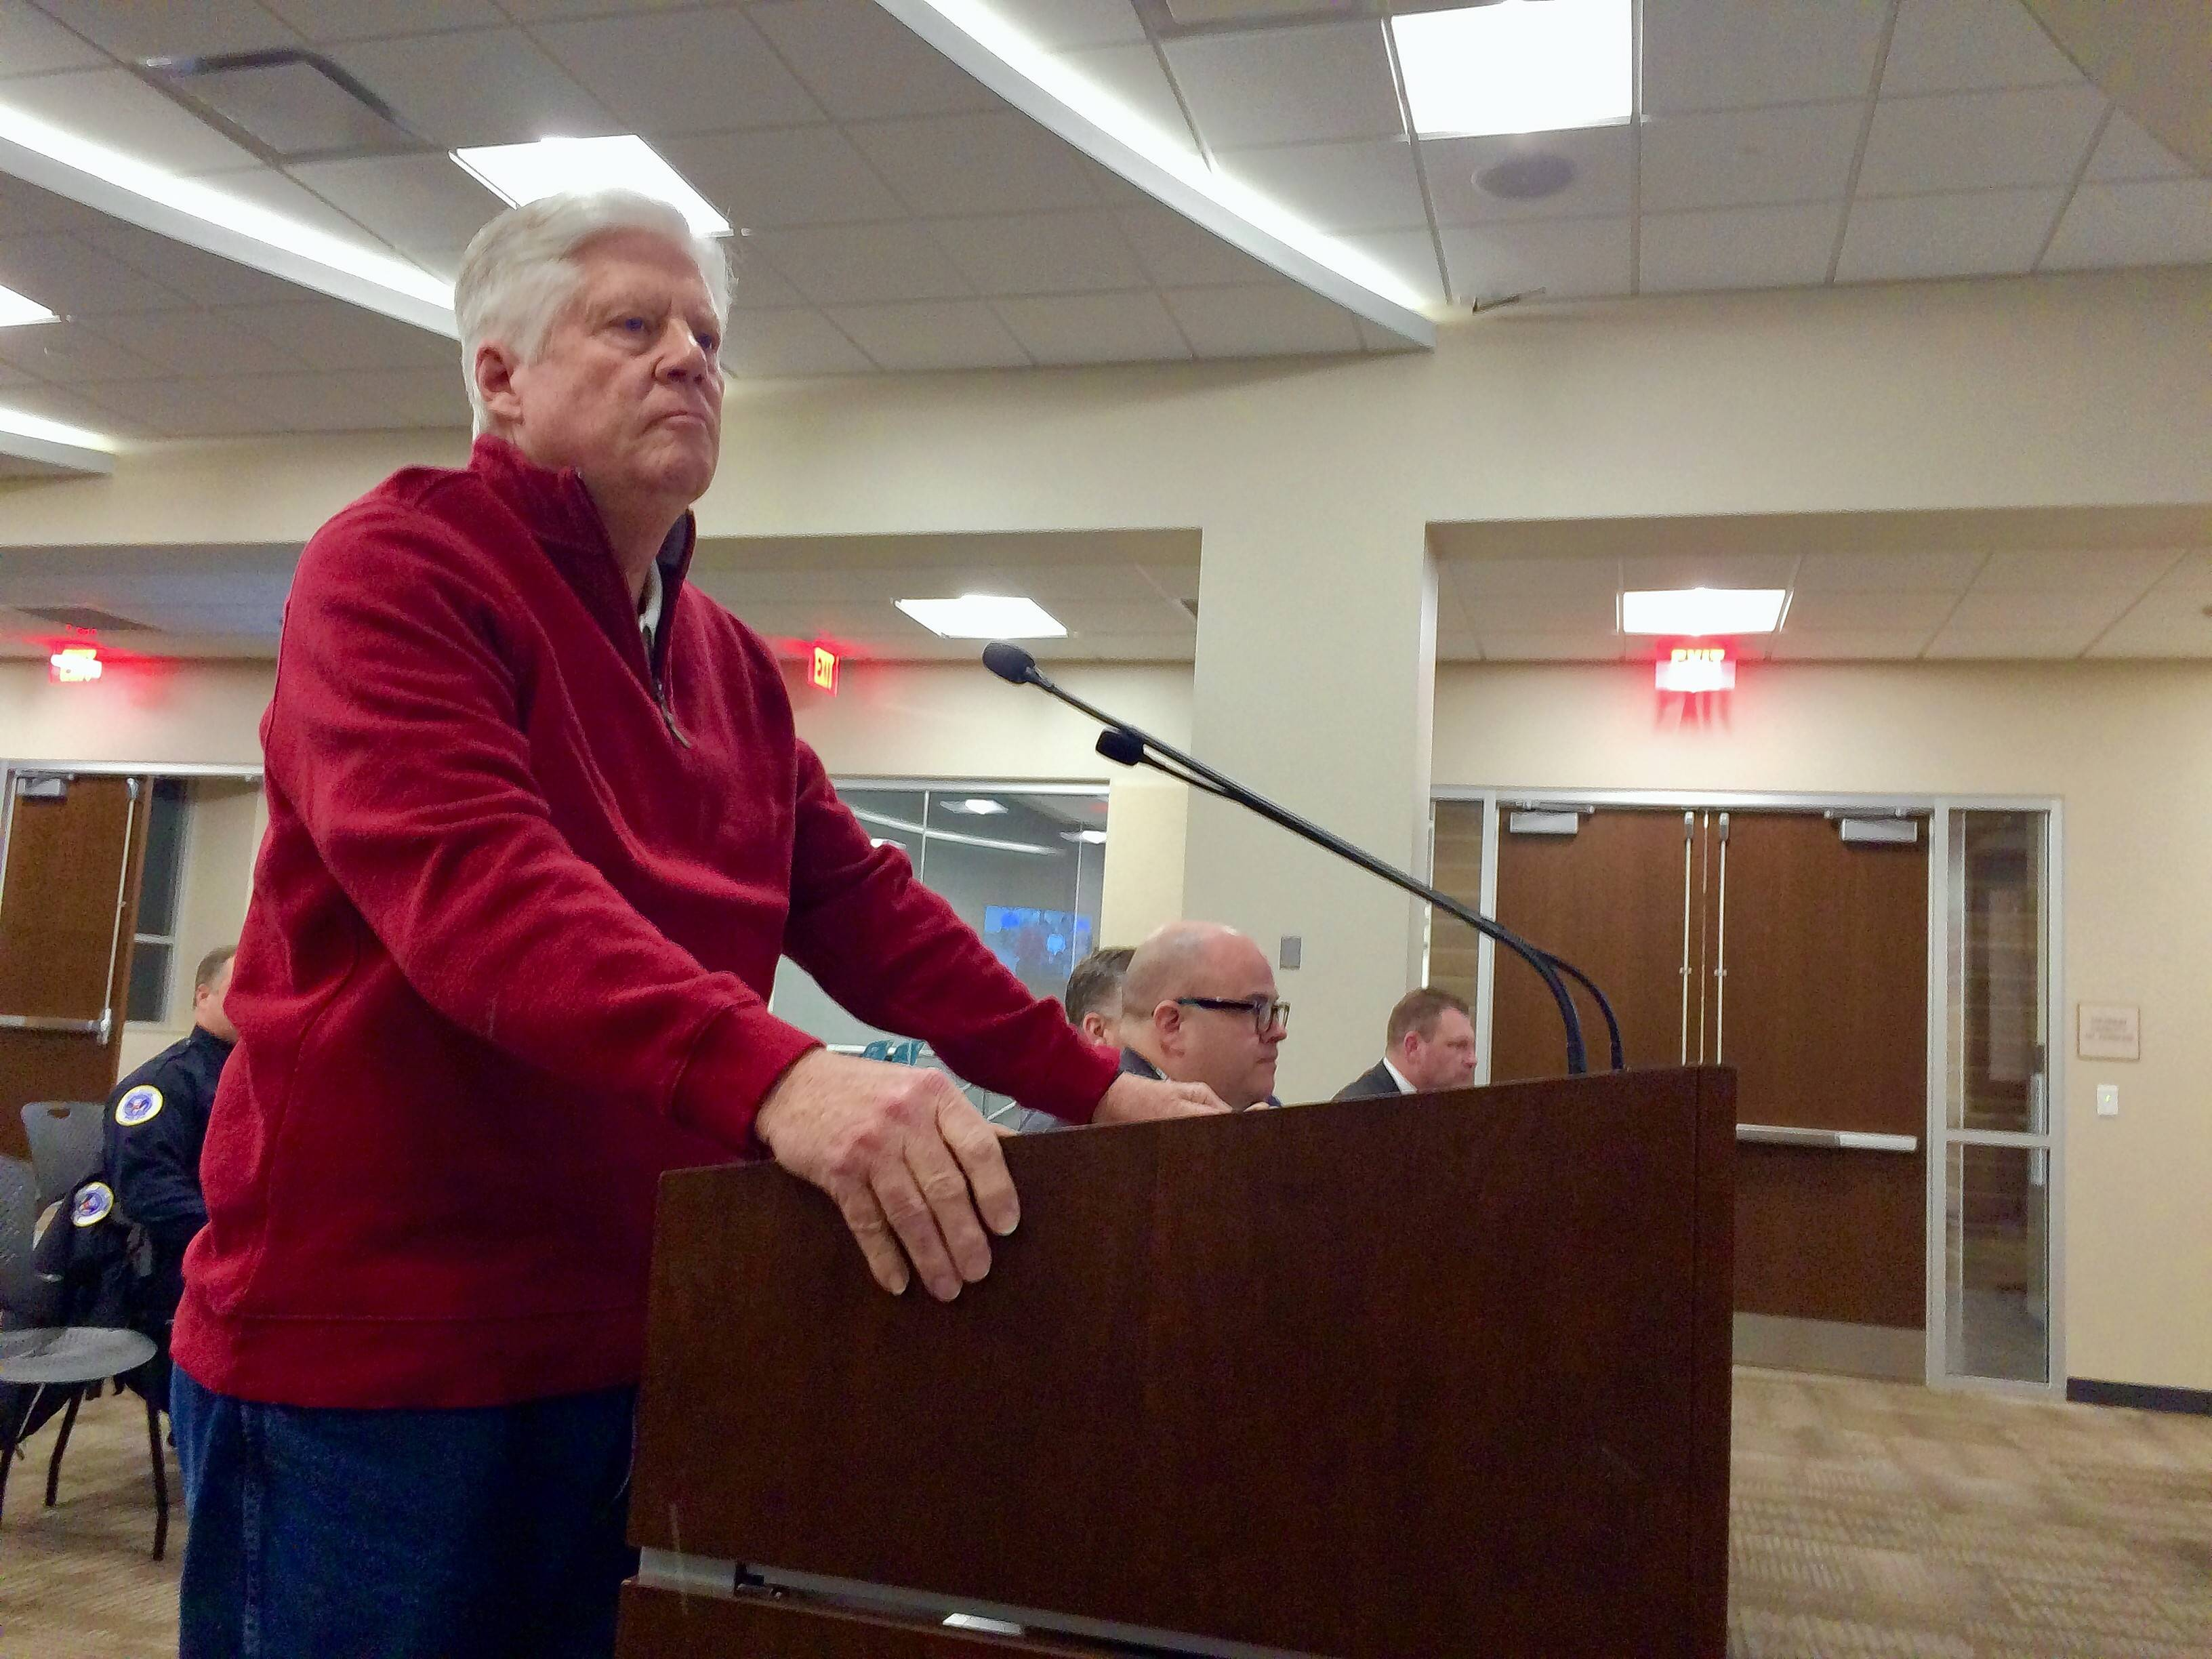 Rick Larson, a resident on Whippoorwill Lane in Palatine, represented several homeowners who objected to a treehouse plan for their block at Monday night's village council meeting.